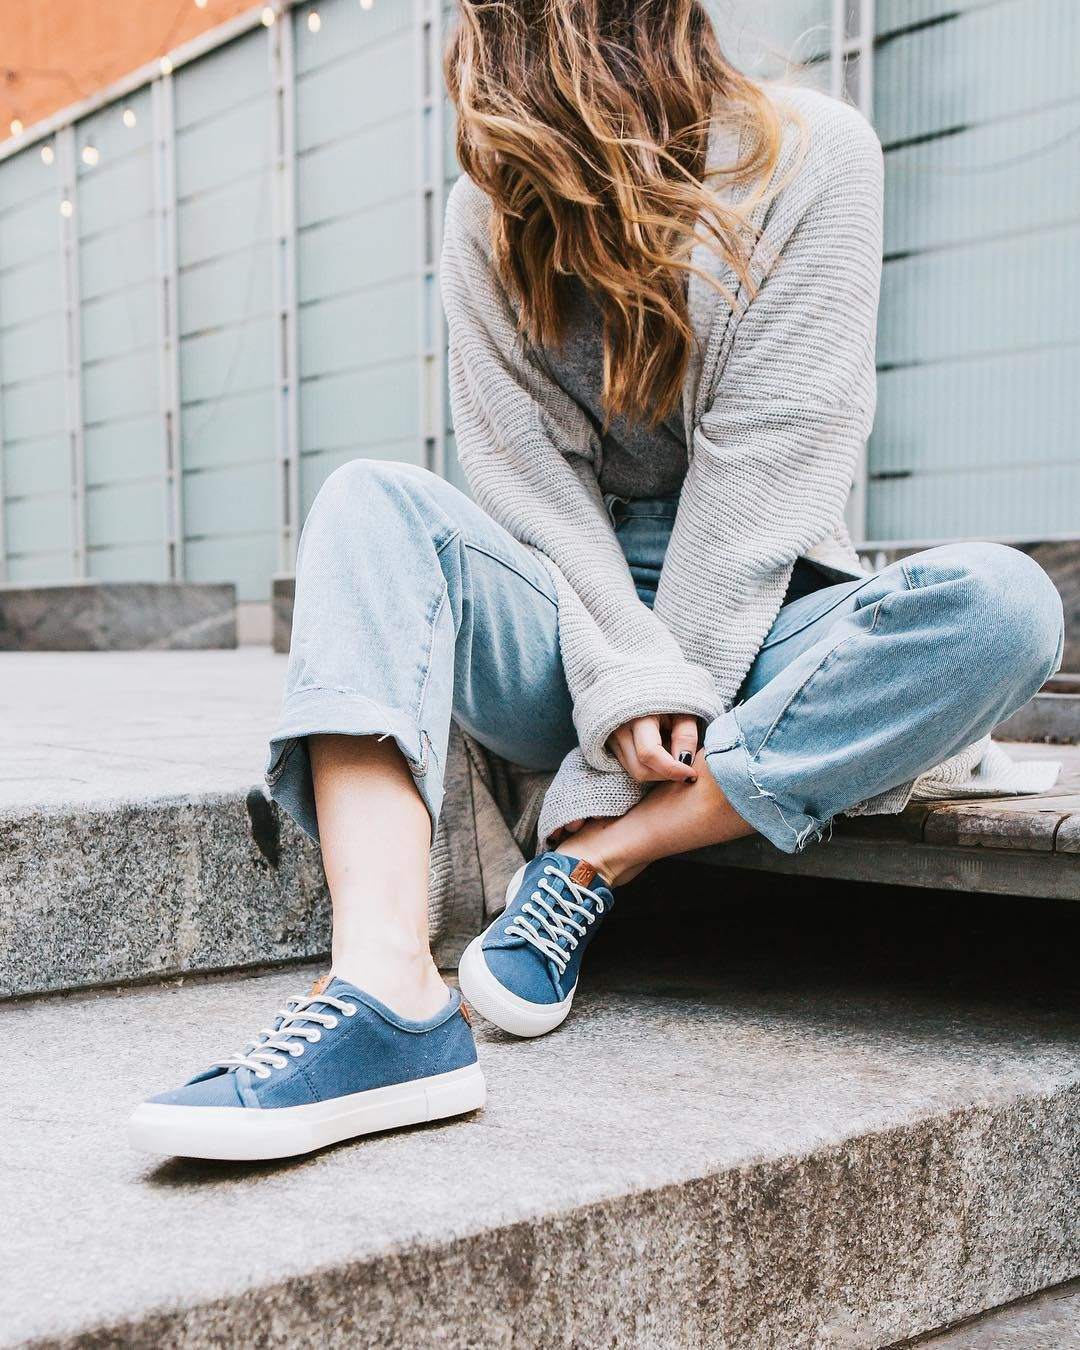 Introducing our new Gia Canvas Sneaker